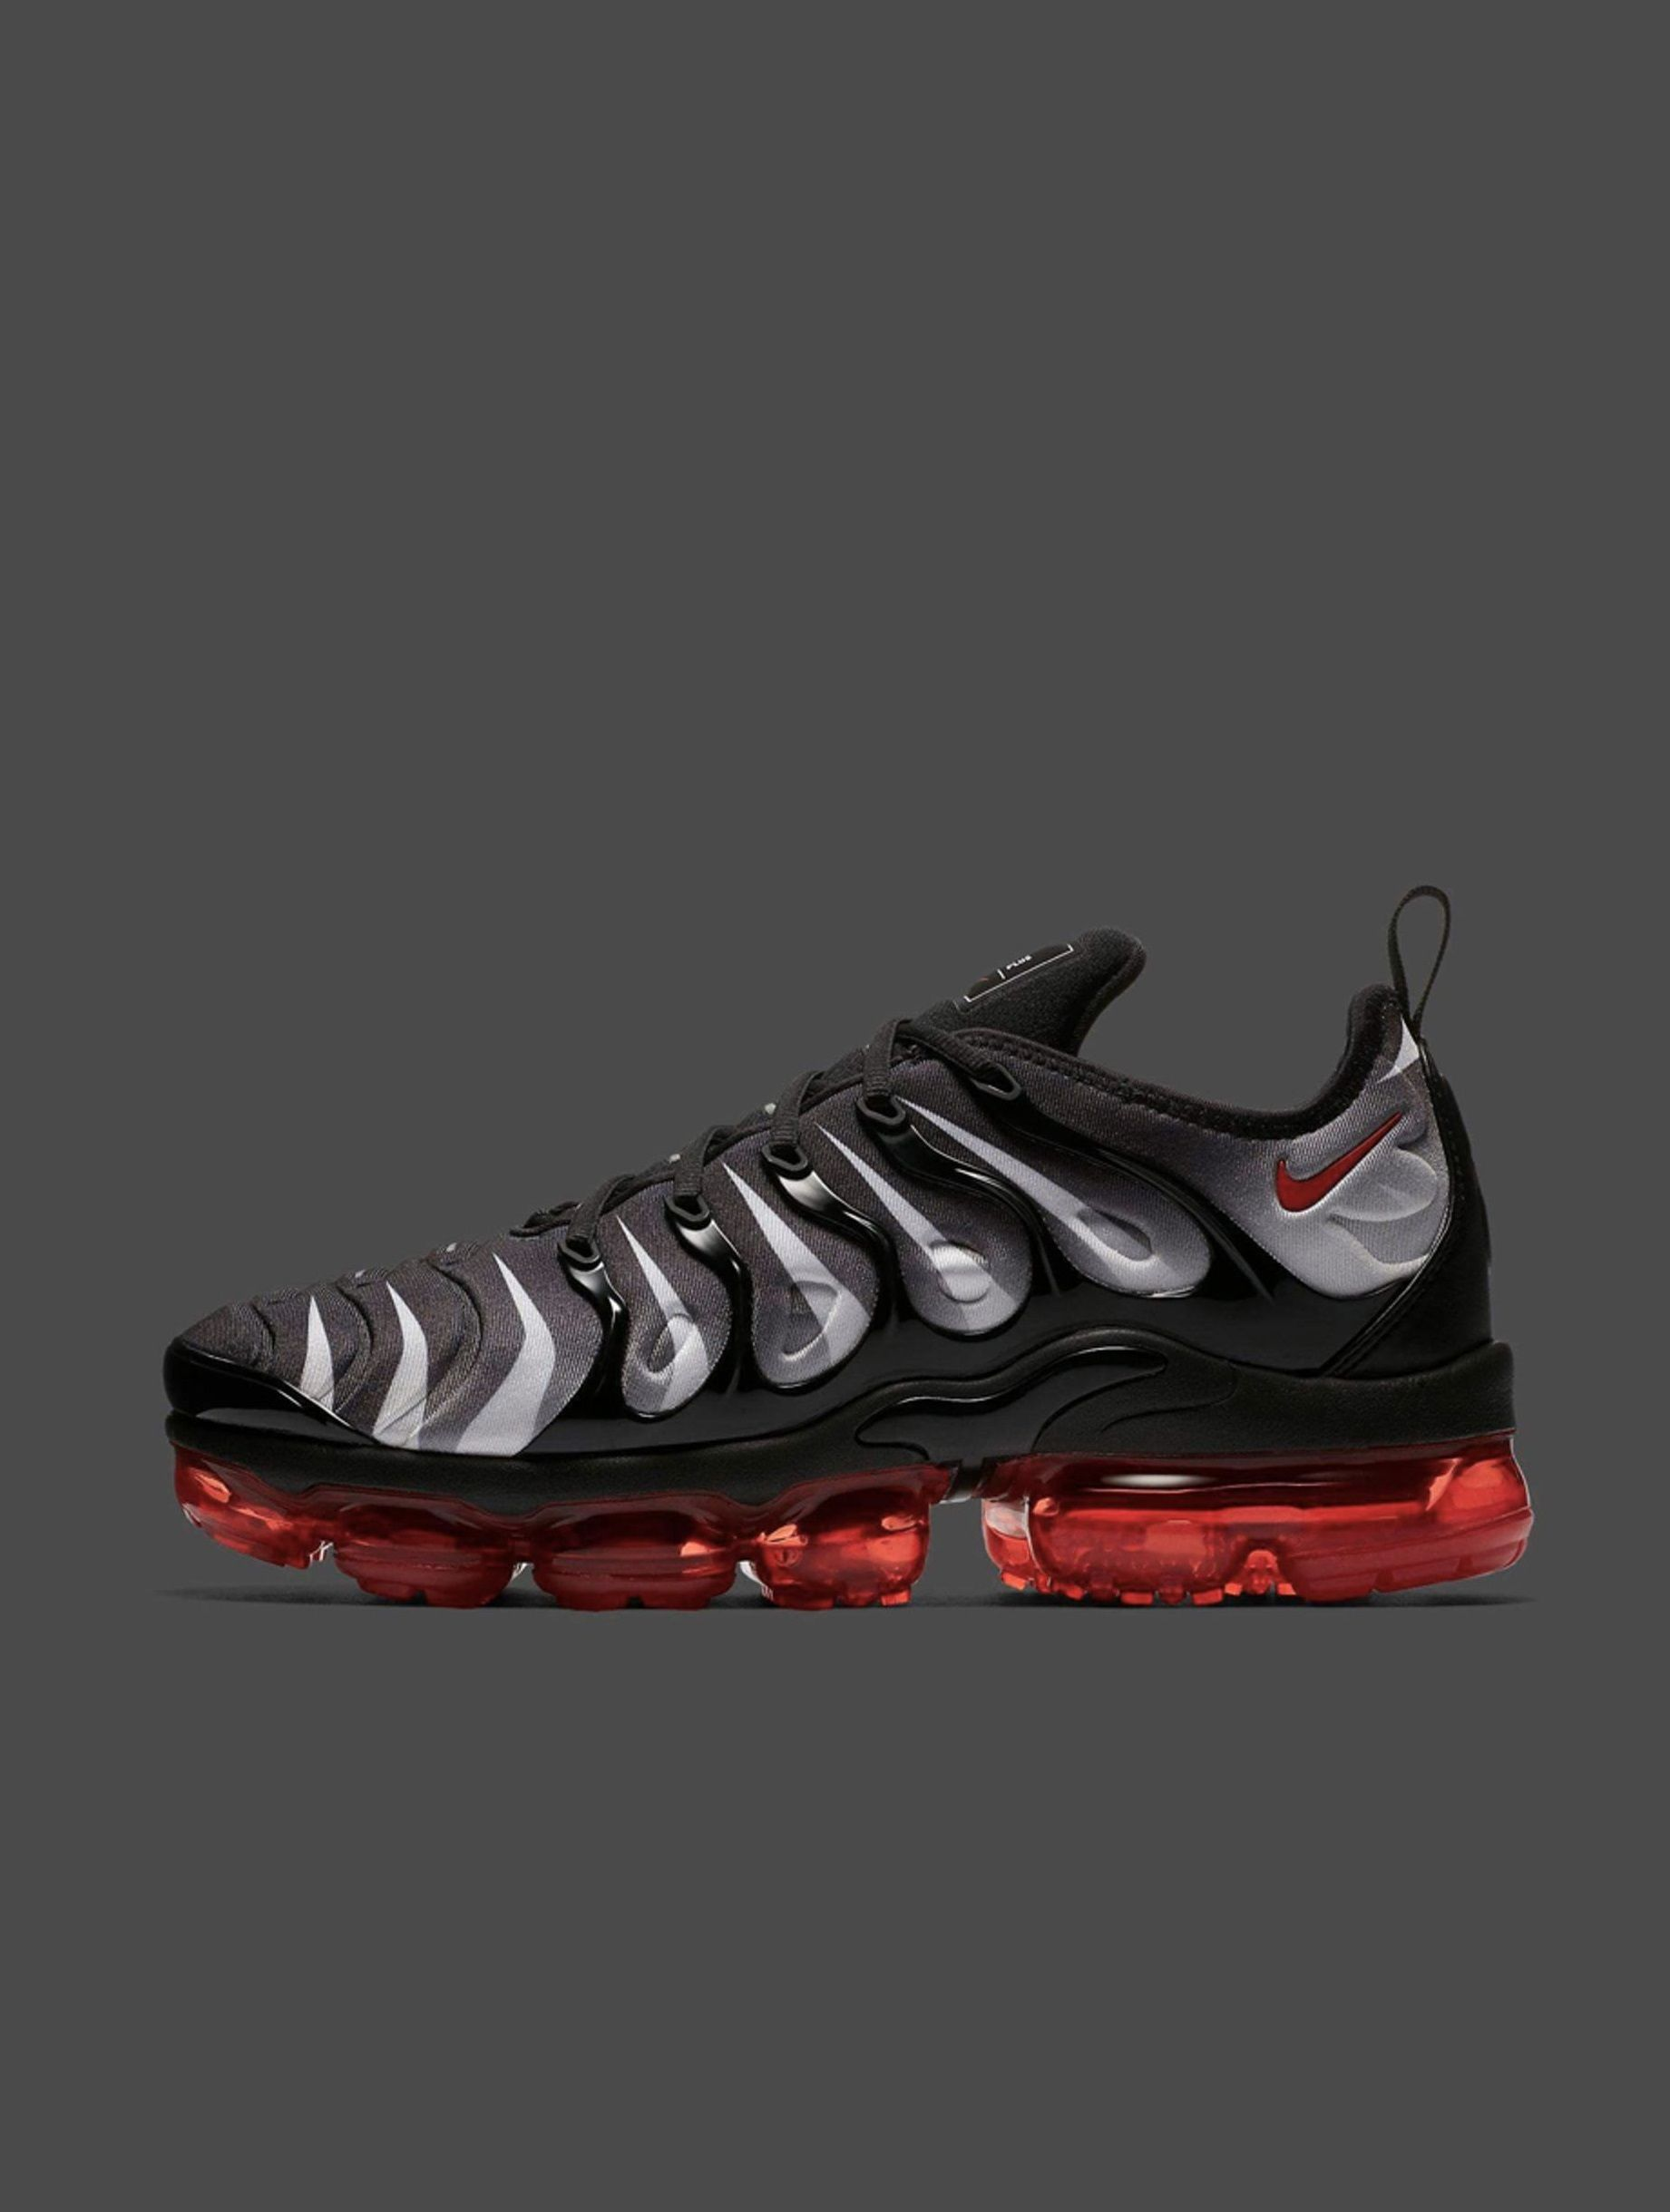 6764ac1a94a Nike Air Vapormax Plus